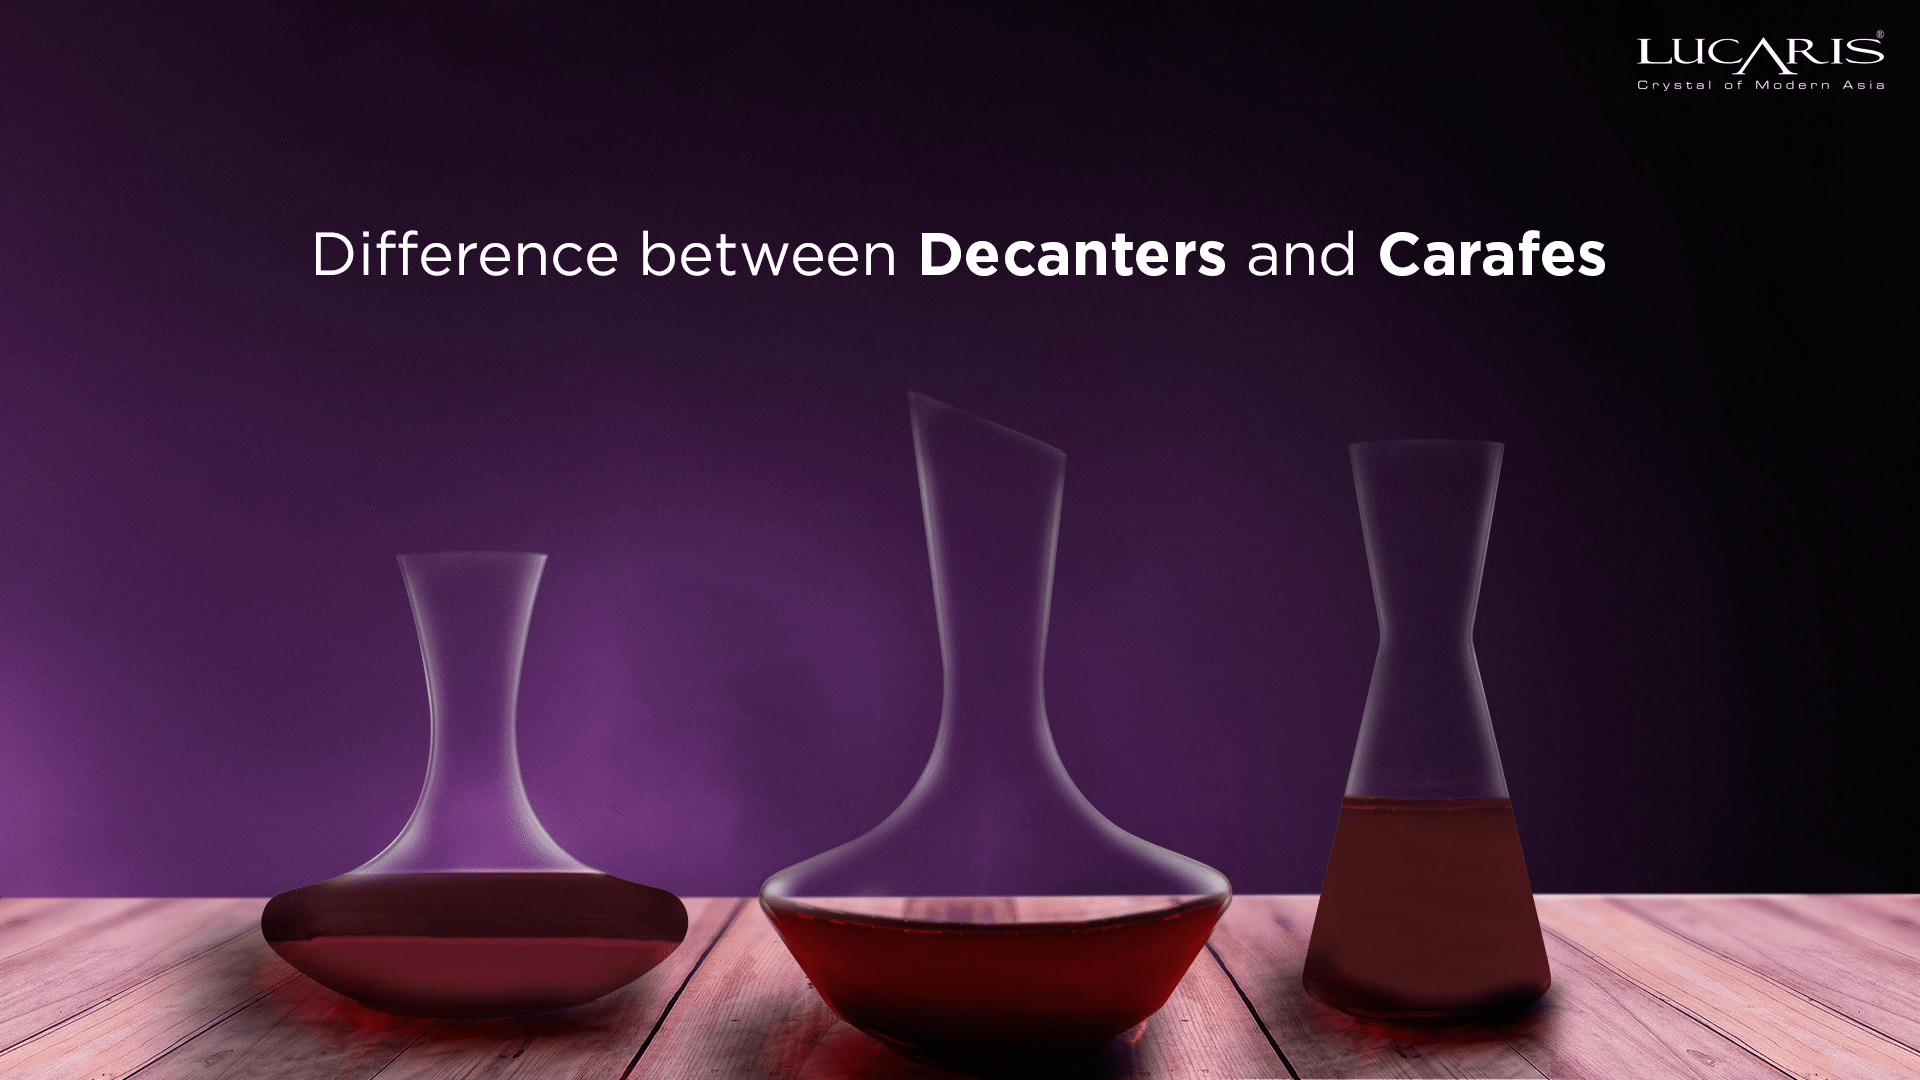 Difference between Decanters and Carafes